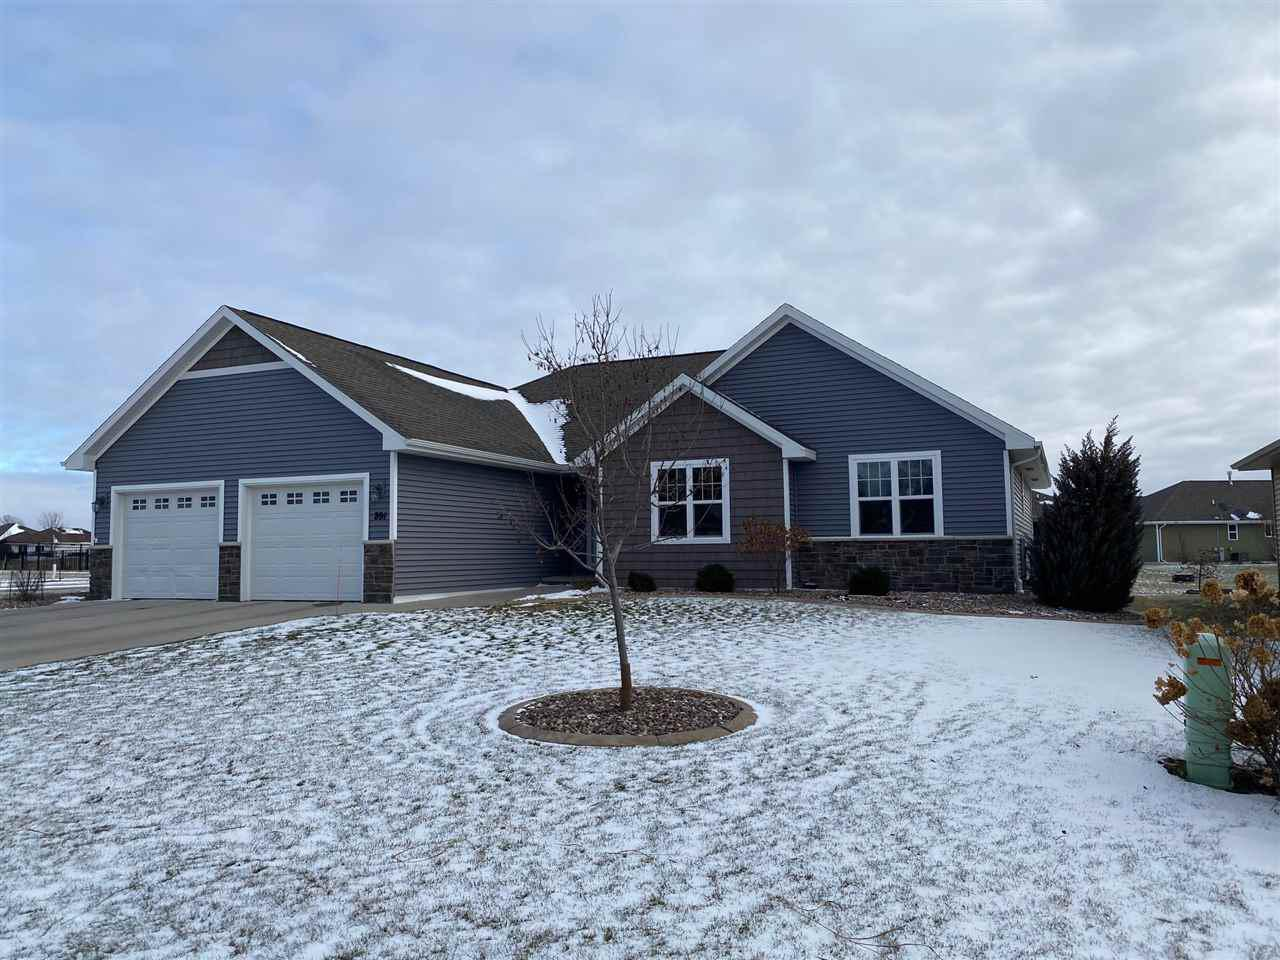 Beautiful subdivision, fully improved w/curb & gutter. Everything you need on main floor plus 2nd rec room in lower level! Bright, white cabinets in kitchen w/open concept kitch/dining area/living room. Walk-in pantry. Lots of southern exposure keeps you cheery on grey days. Master BR w/walk-in shower & walk-in closet. 2 other BRs on main, spacious 2nd bath & addl 1/2 bath! Spend summer outside under beautiful pergola. Pro landscaping. Insulated garage. Easy access to HWYs &  schools. Situated on a spacious corner lot. Built in 2014, this home is low-maintenance & has the floorplan you need